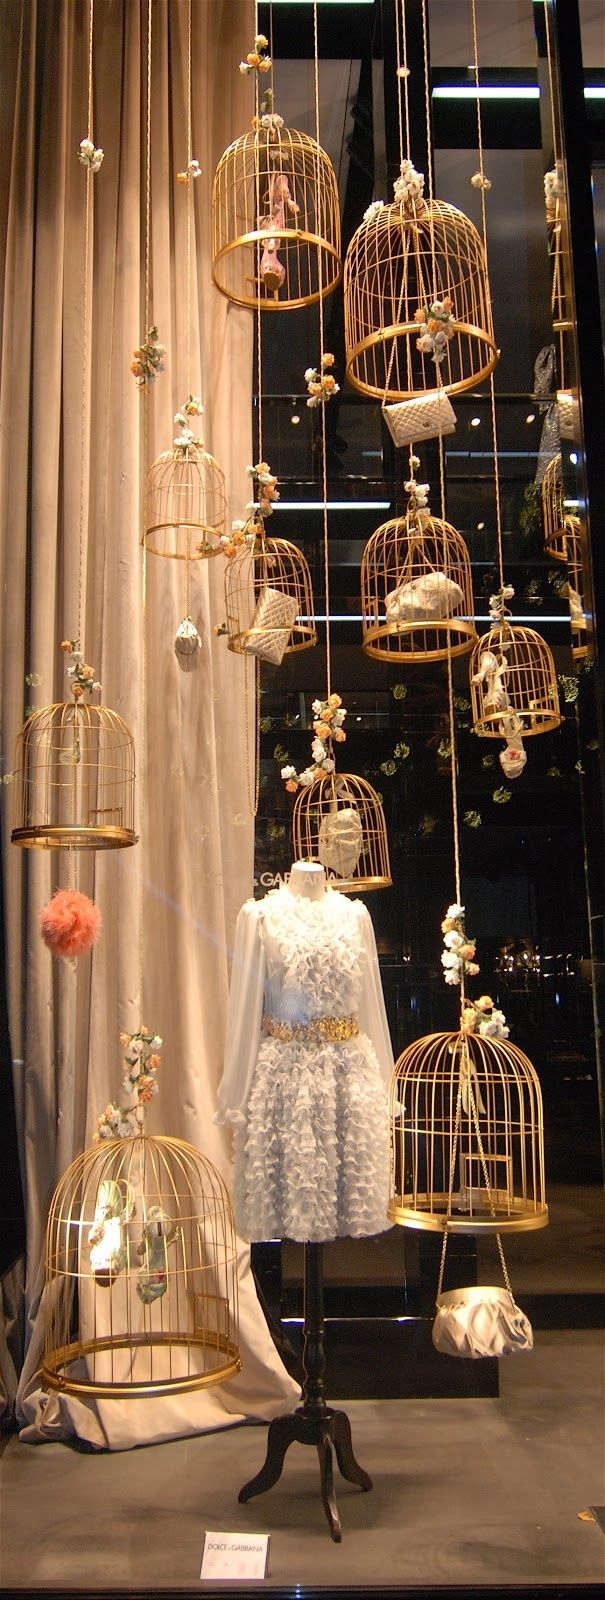 I like the idea of these bird cages but i have no idea where would get them or if they would look weird in the room: